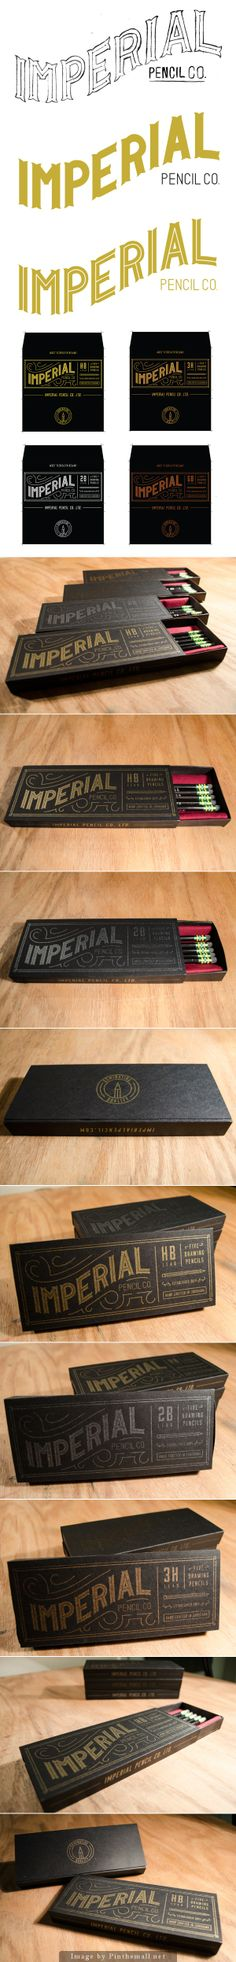 Imperial Pencil Co. PD